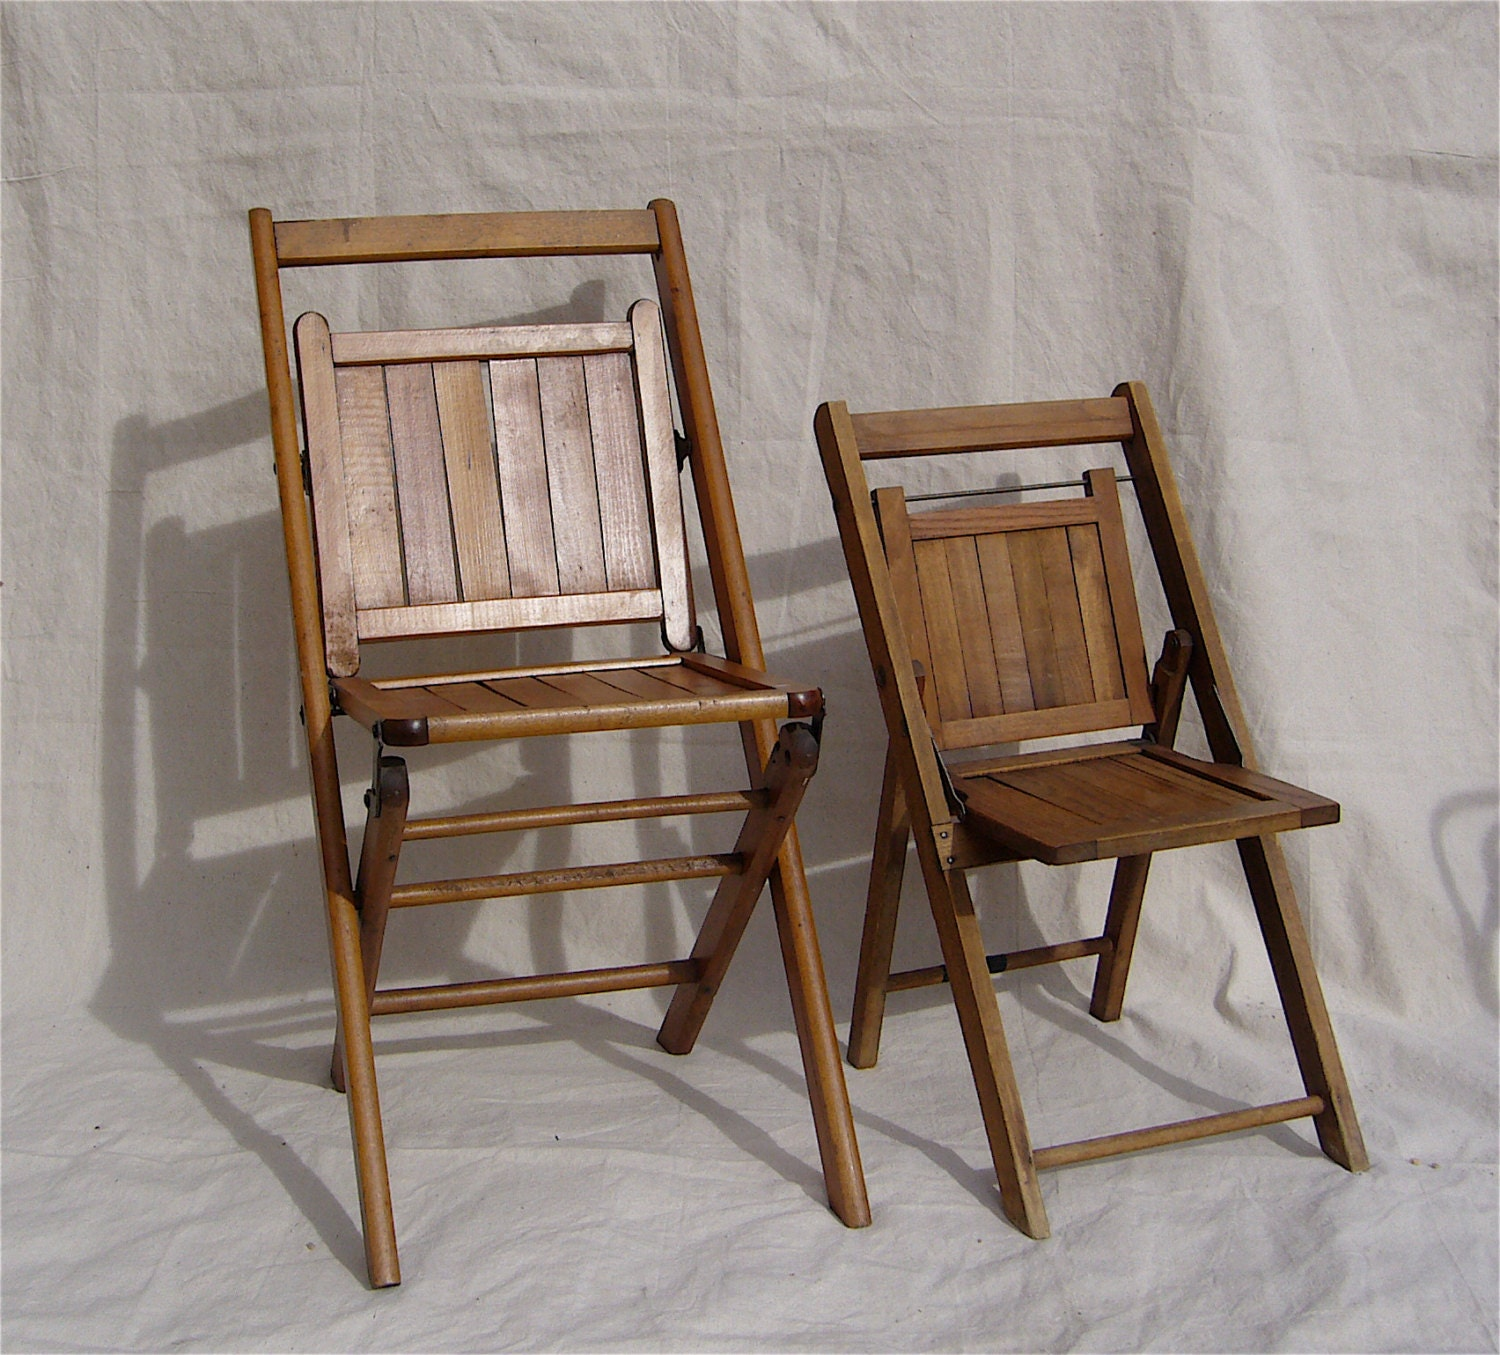 Antique Folding Chairs Wood Slat Pair Adult & Child sized c